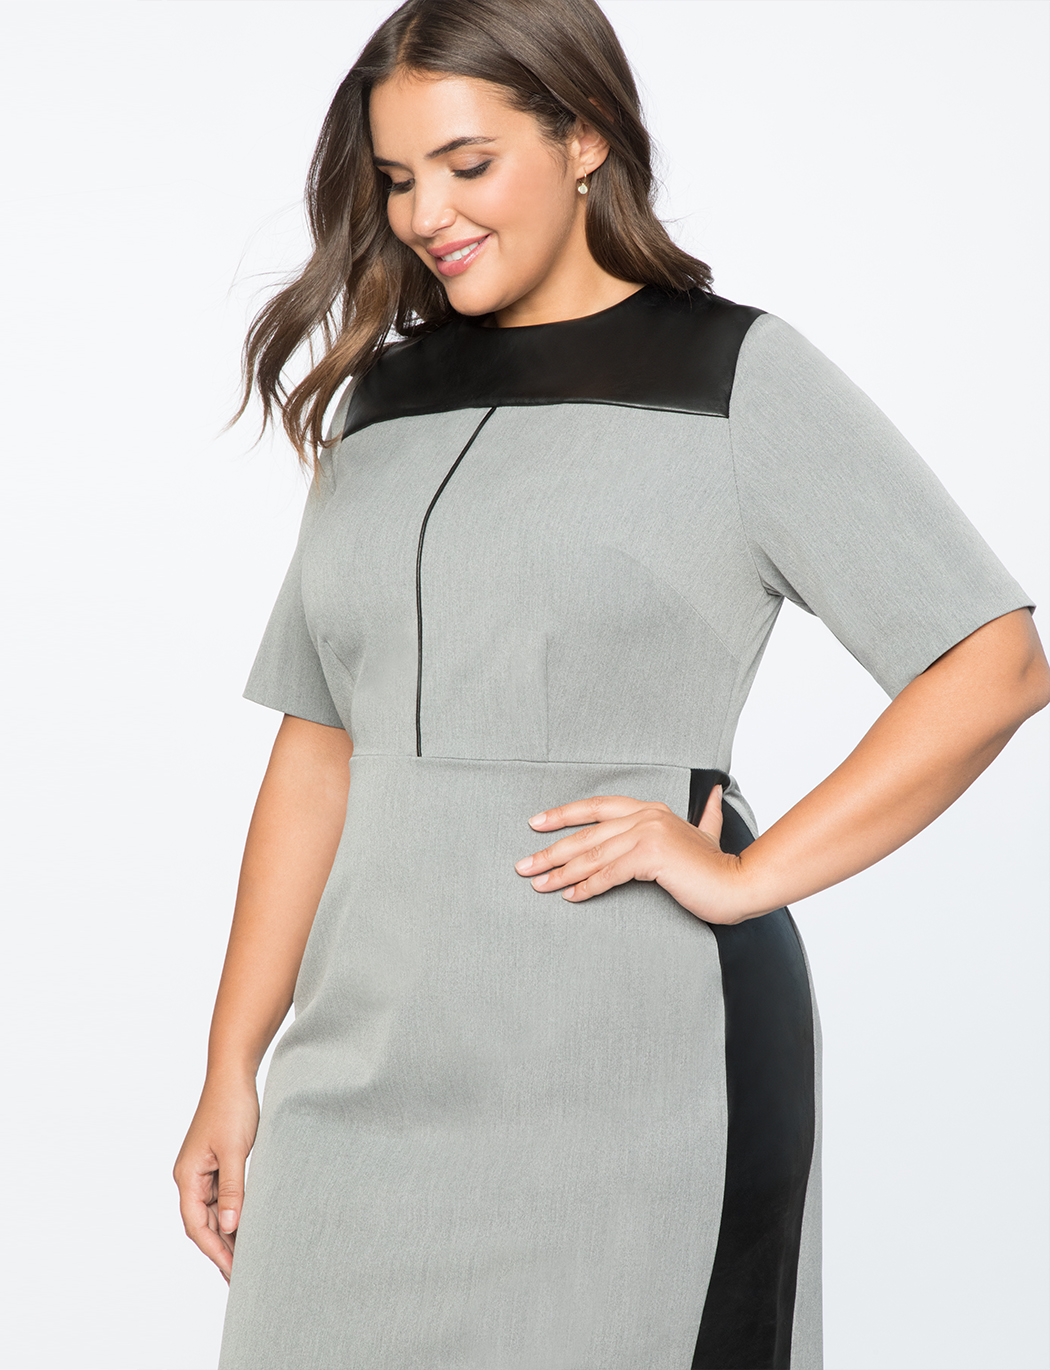 Premier Bi-Stretch Faux Leather Mix Work Dress | Women\'s Plus Size Dresses  | ELOQUII